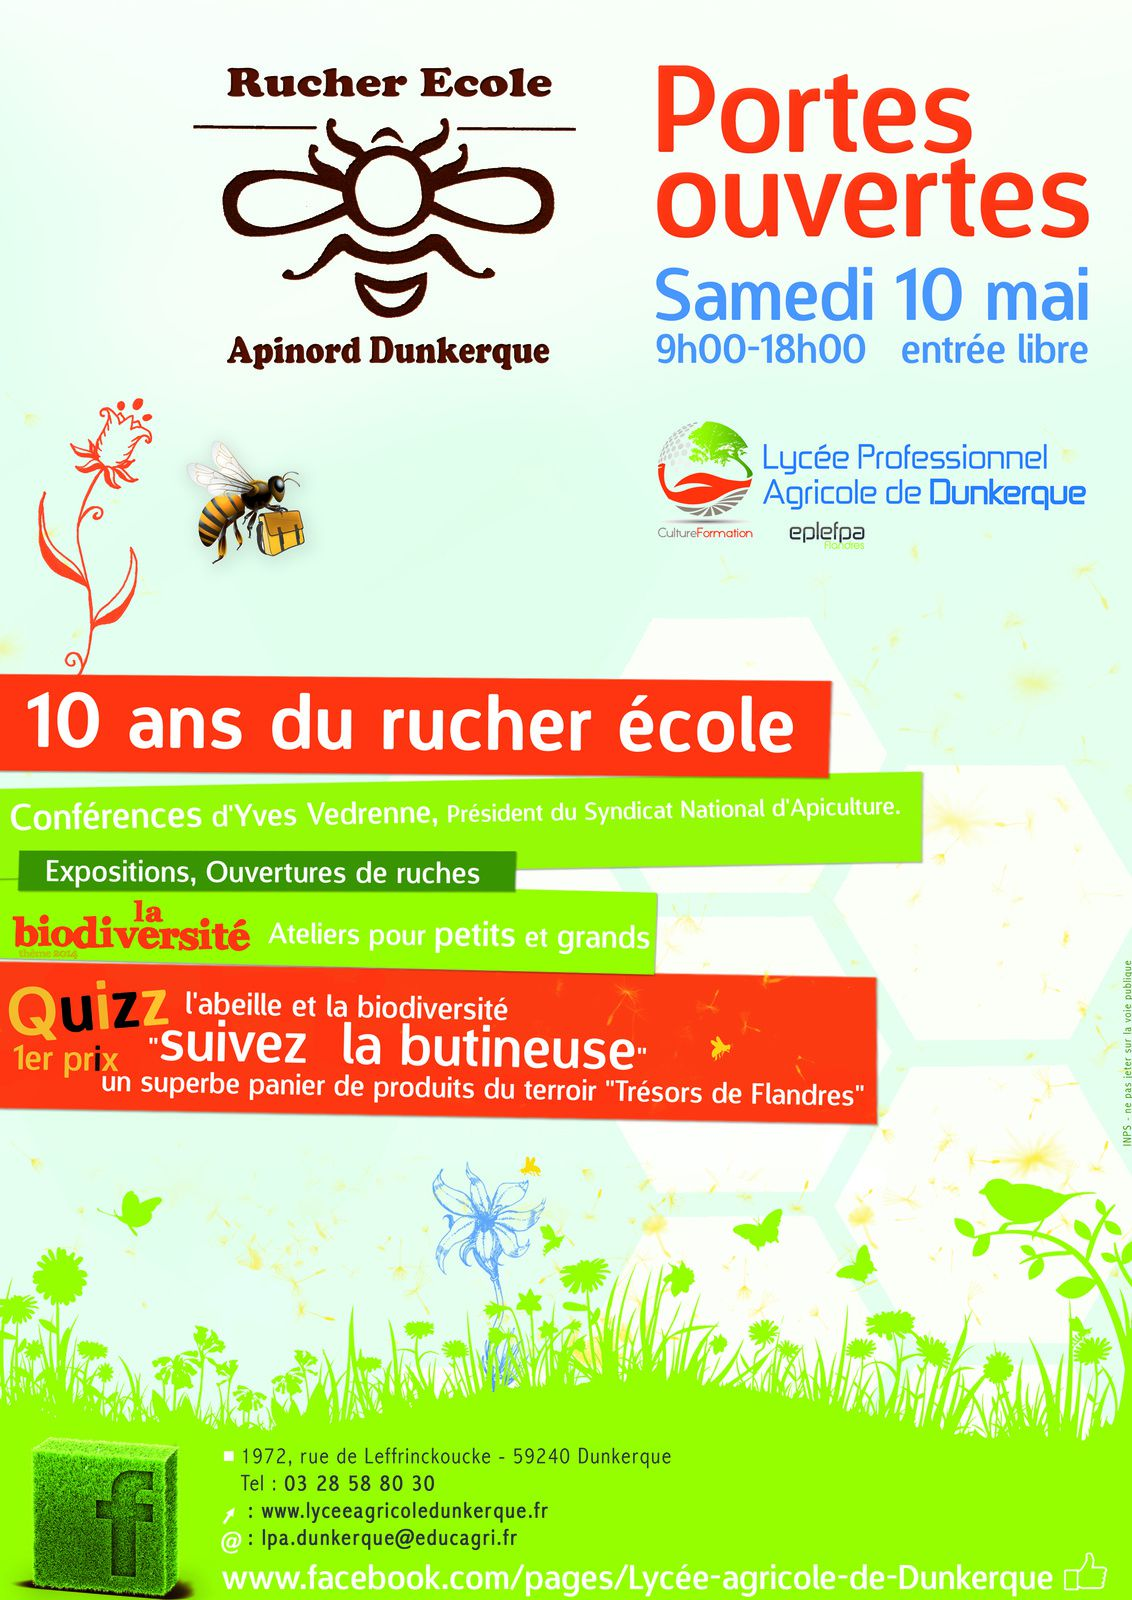 RAPPEL : Dix Ans Rucher Ecole Apinord DUNKERQUE